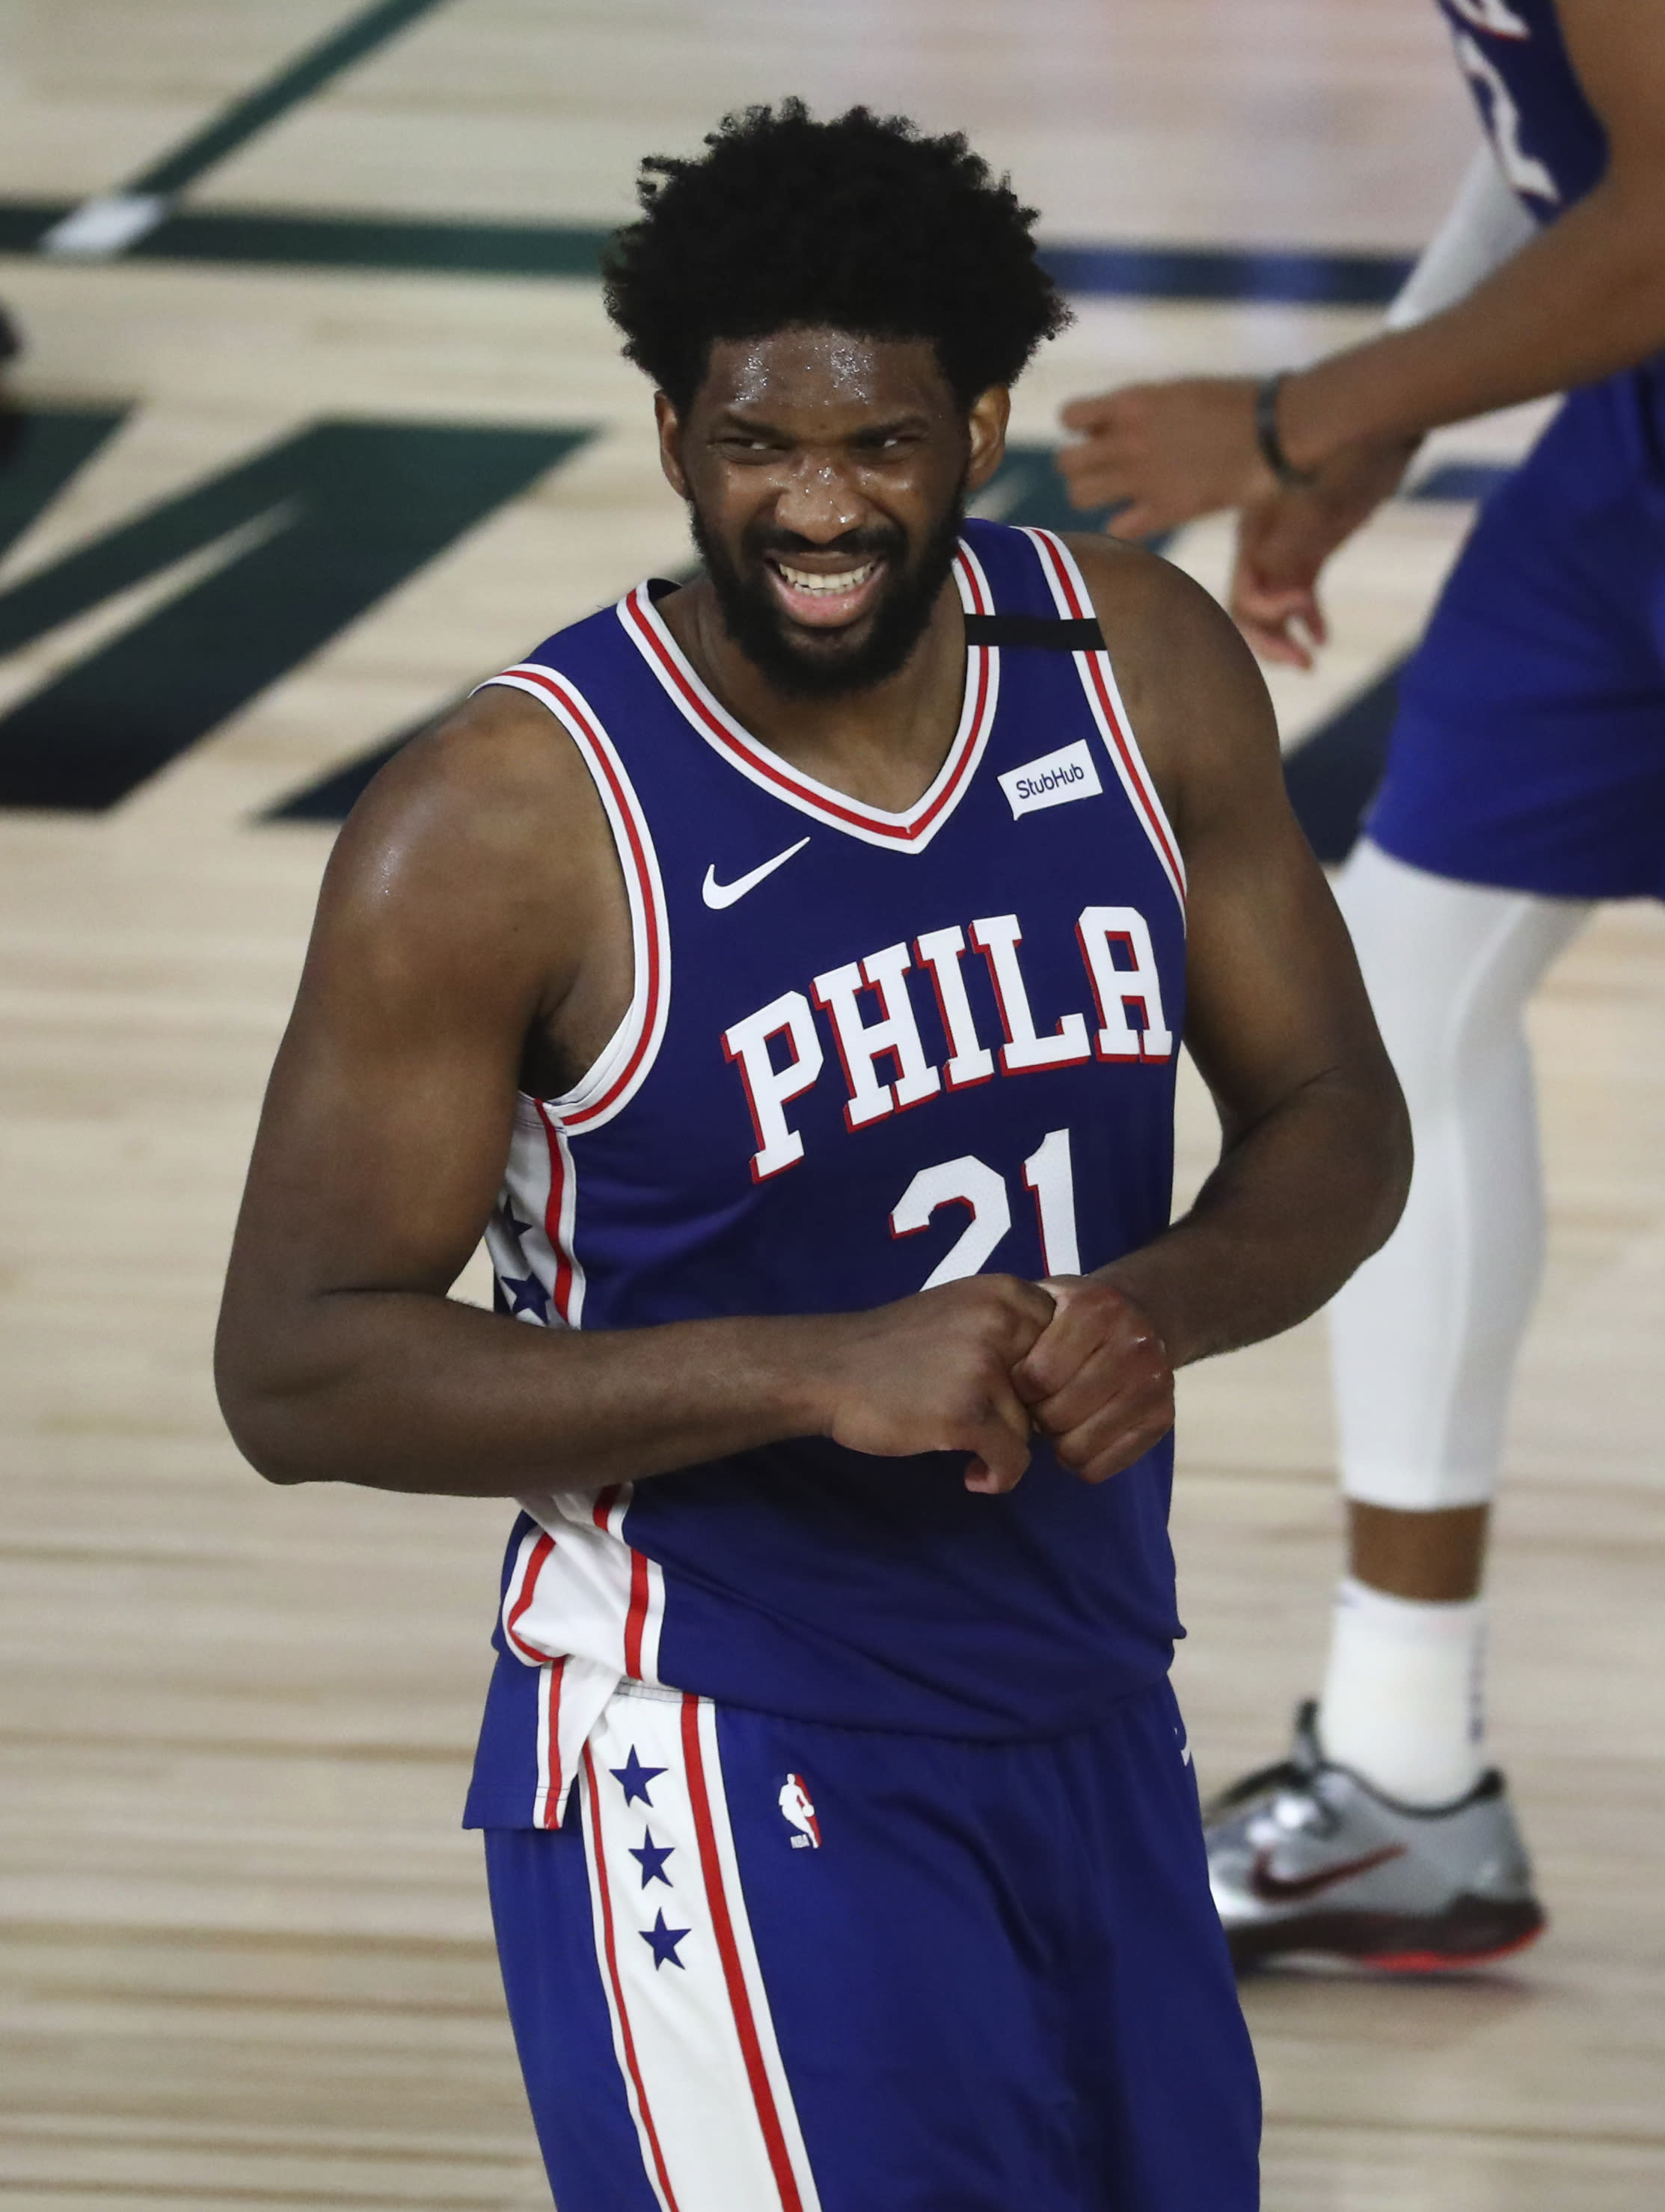 Philadelphia 76ers center Joel Embiid (21) reacts during the second half against the Boston Celtics in Game 3 of an NBA basketball first-round playoff series, Friday, Aug. 21, 2020, in Lake Buena Vista, Fla. (Kim Klement/Pool Photo via AP)